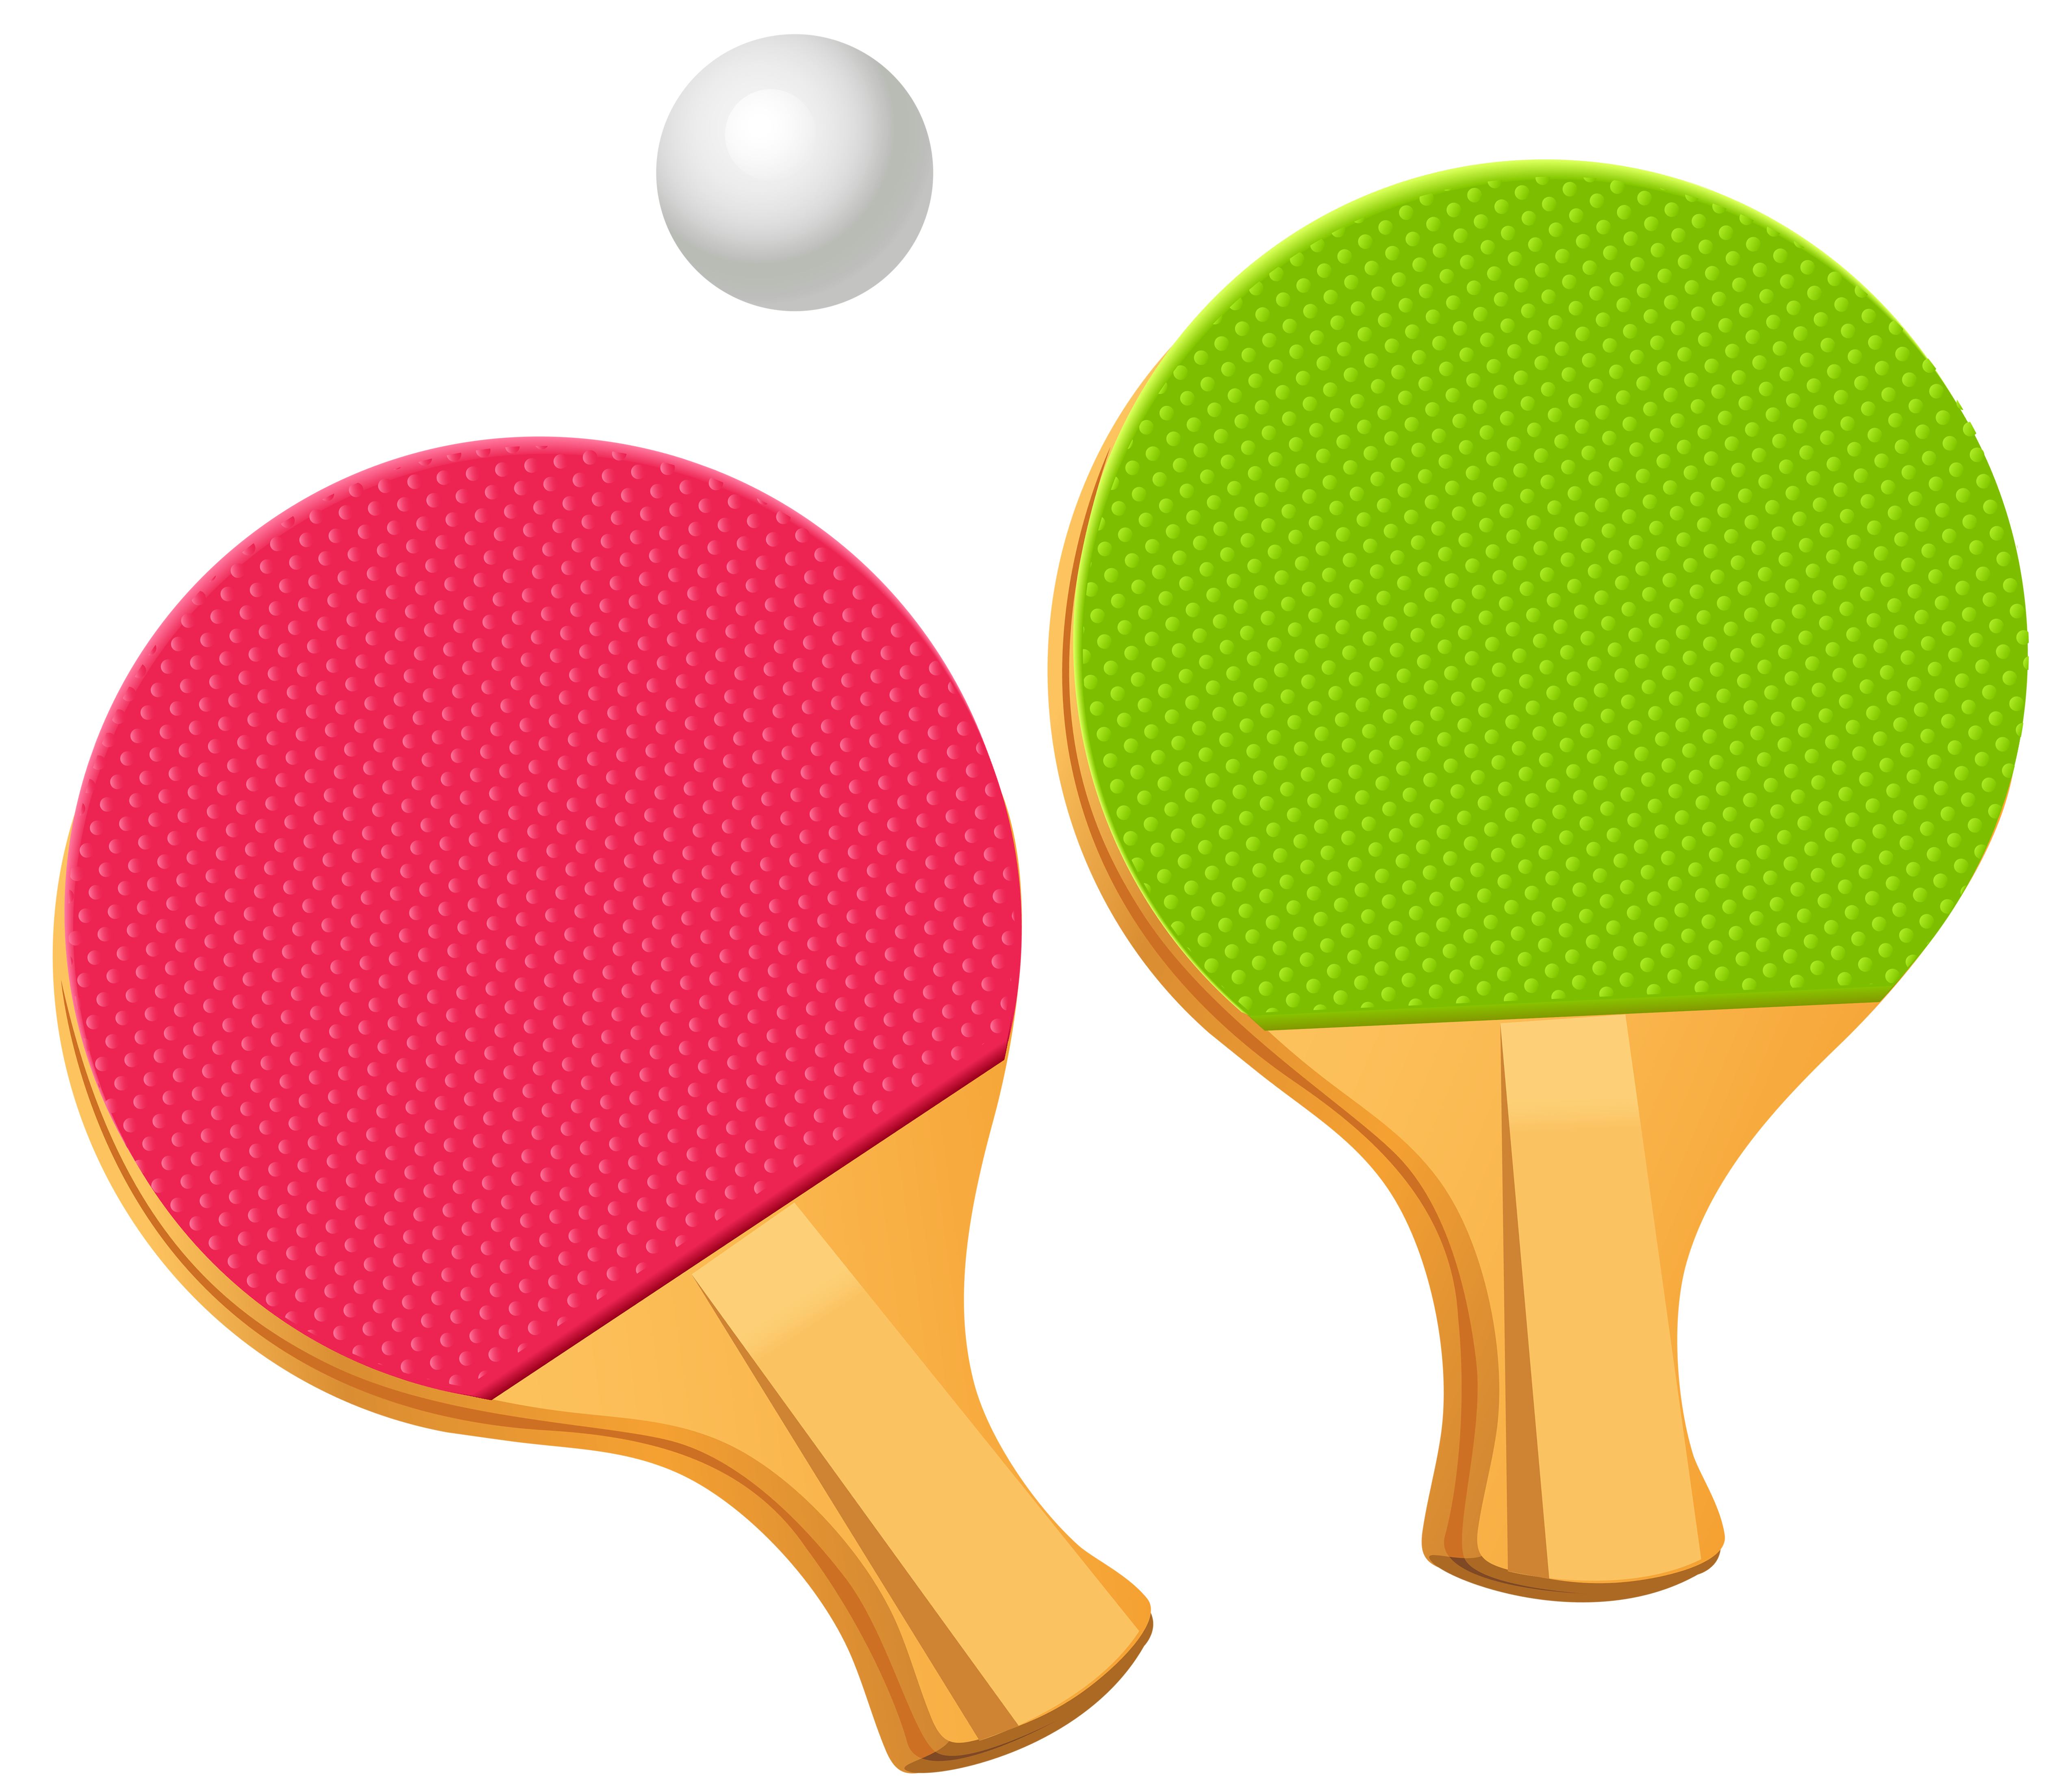 5066x4409 Table Tennis Ping Pong Paddles Png Vector Clipartu200b Gallery